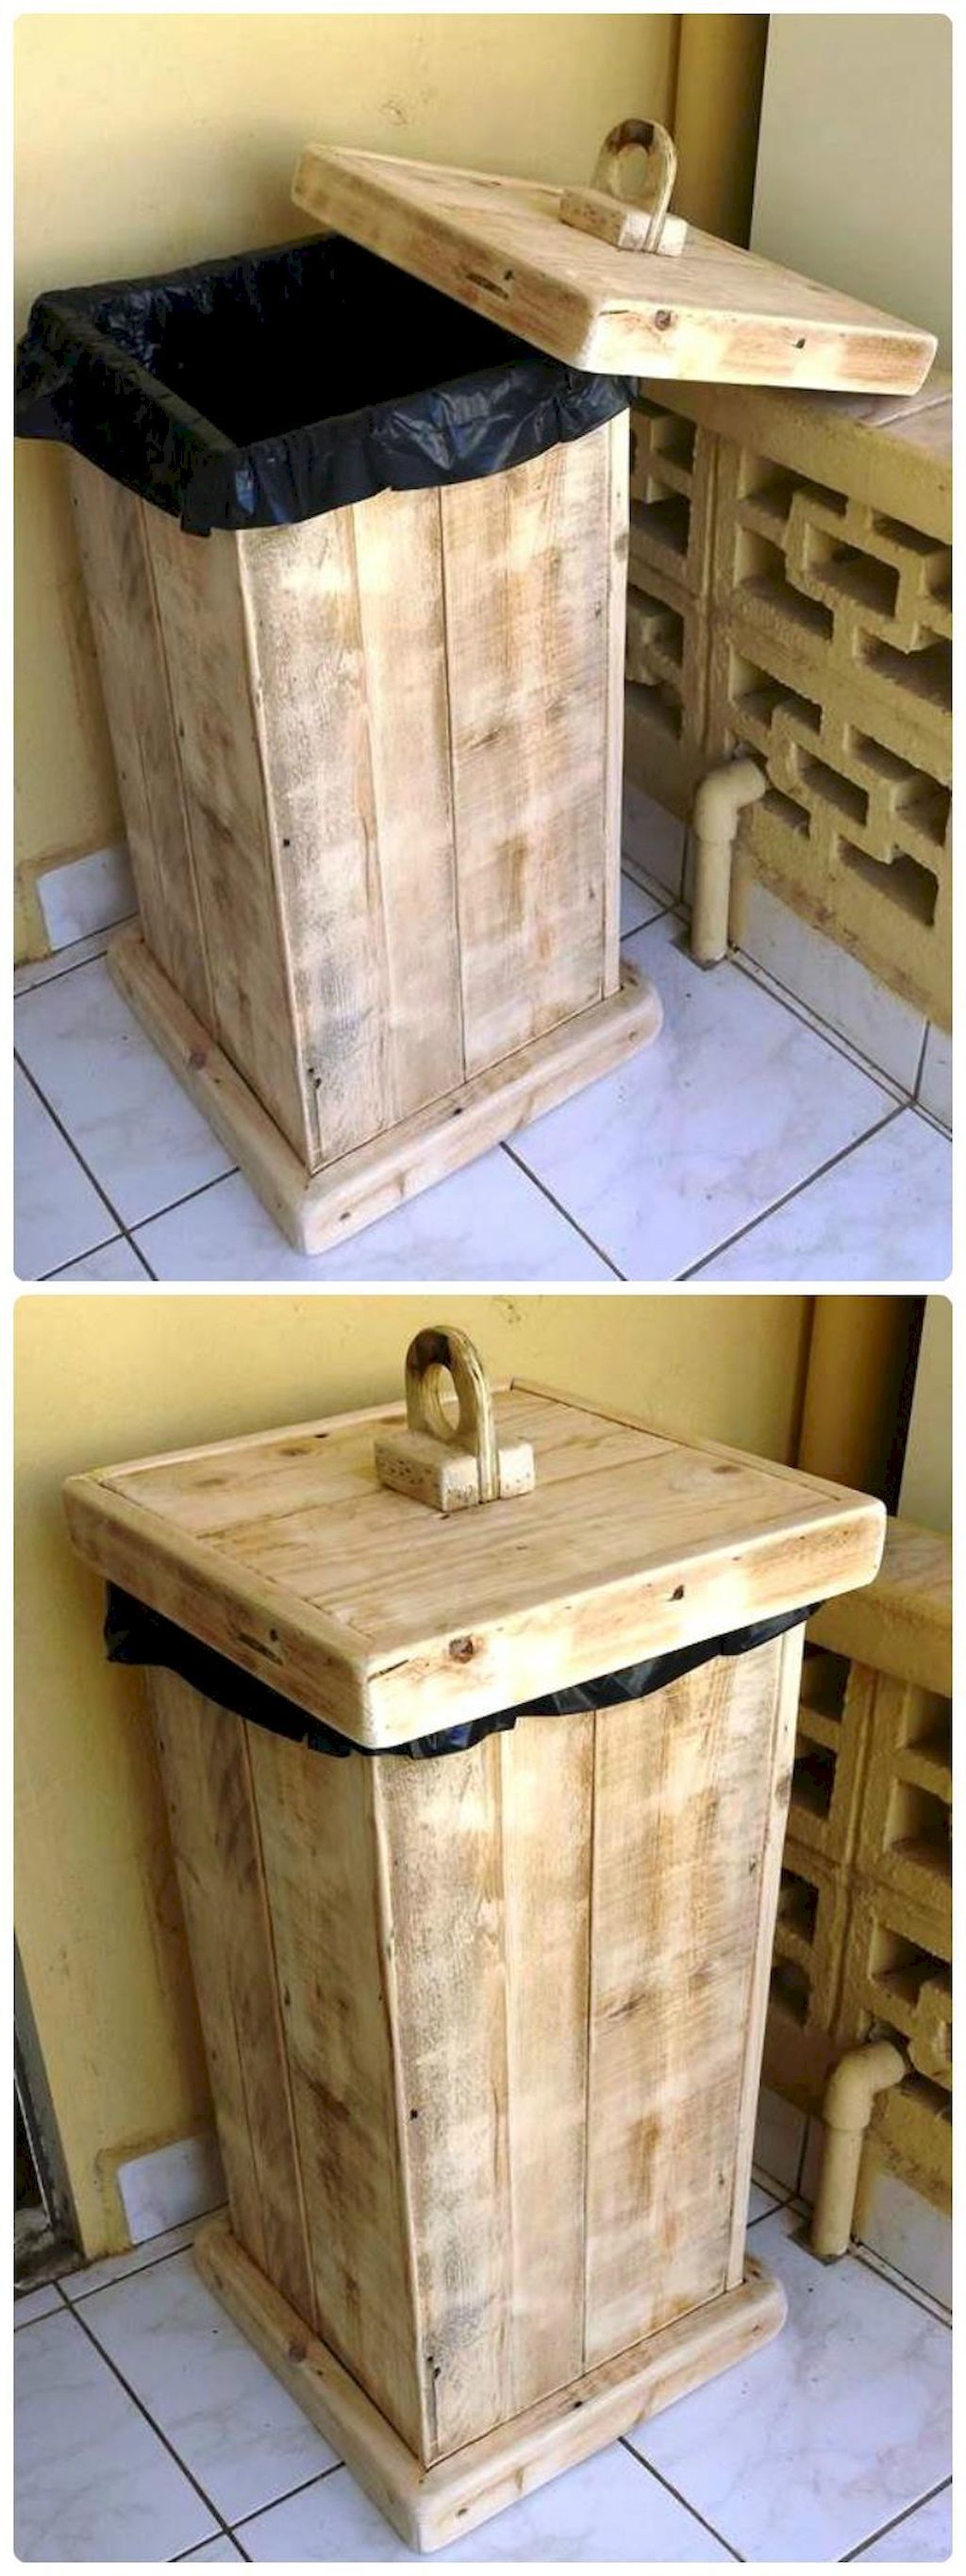 Easy and inexpensive diy pallet furniture ideas (29